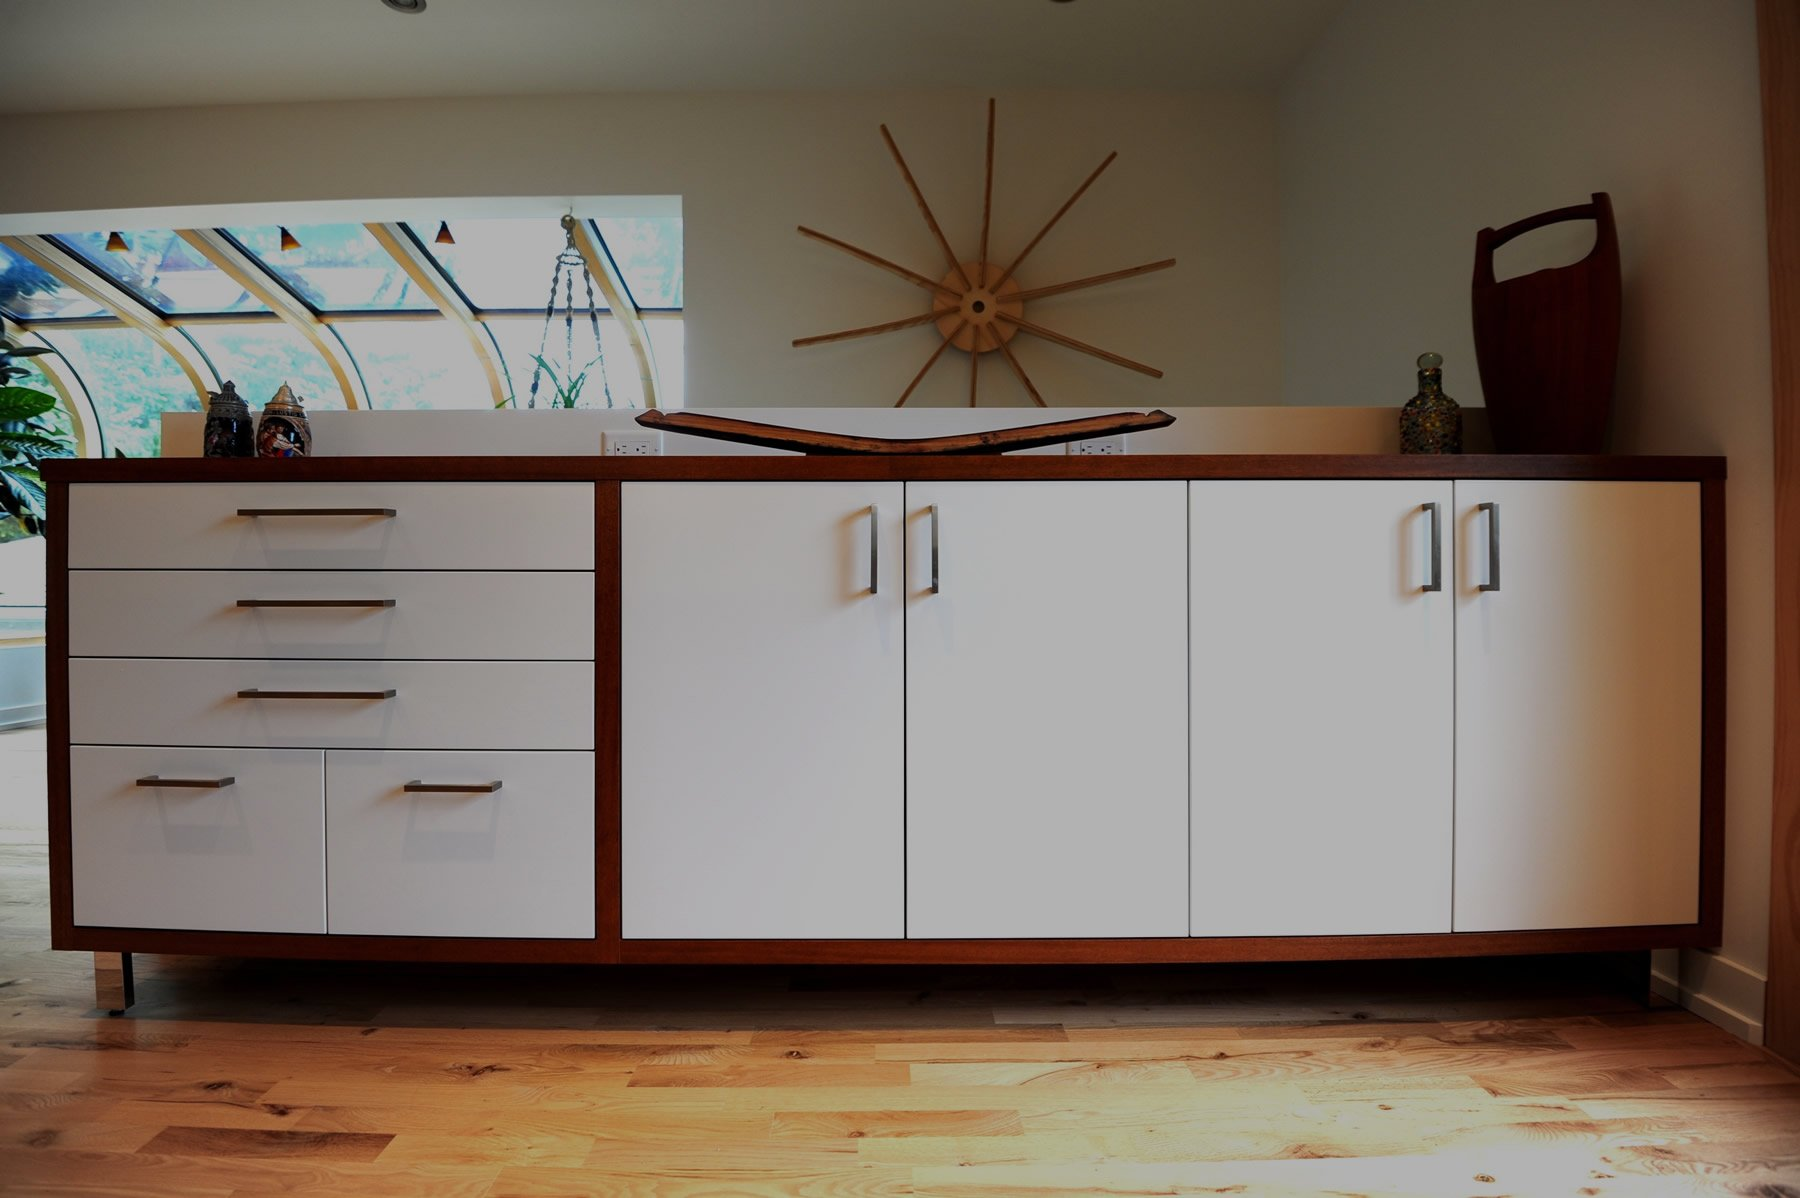 Custom kitchen cabinets calgary evolve kitchens recycled wood kitchen cabinets quick view eventelaan Image collections